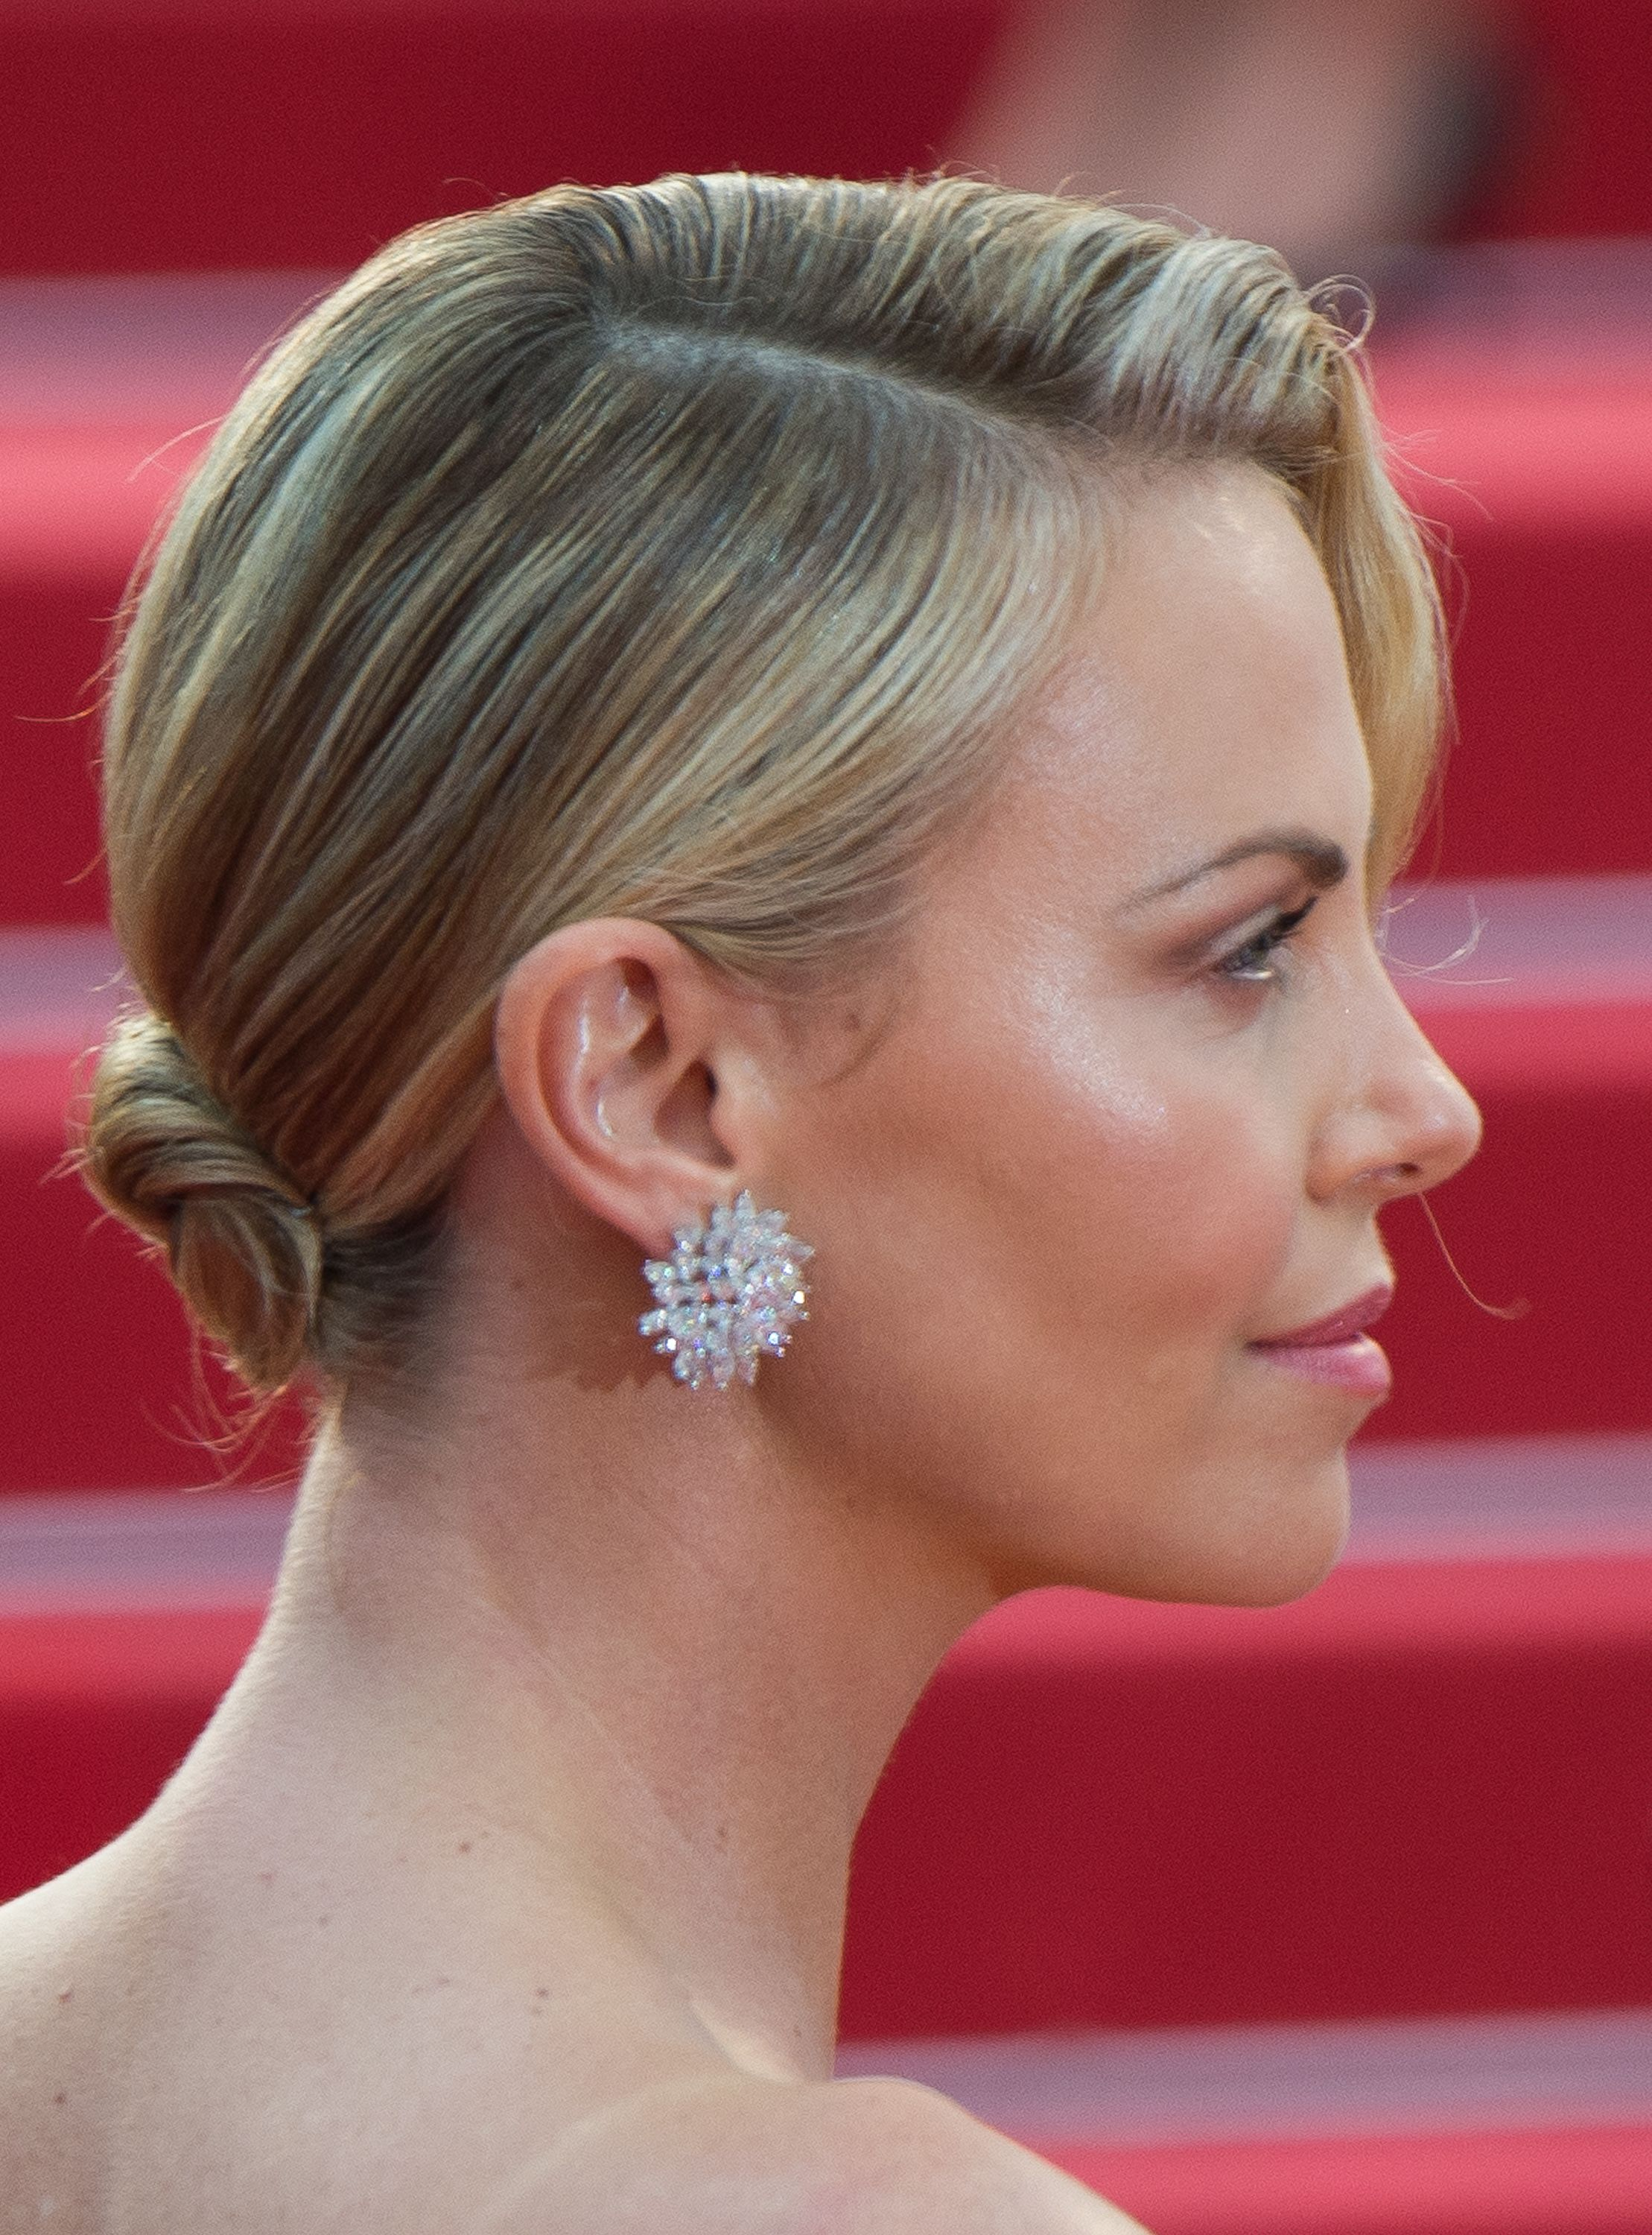 20 Cute Christmas Party Hairstyles Easy Holiday Hair Ideas For Women